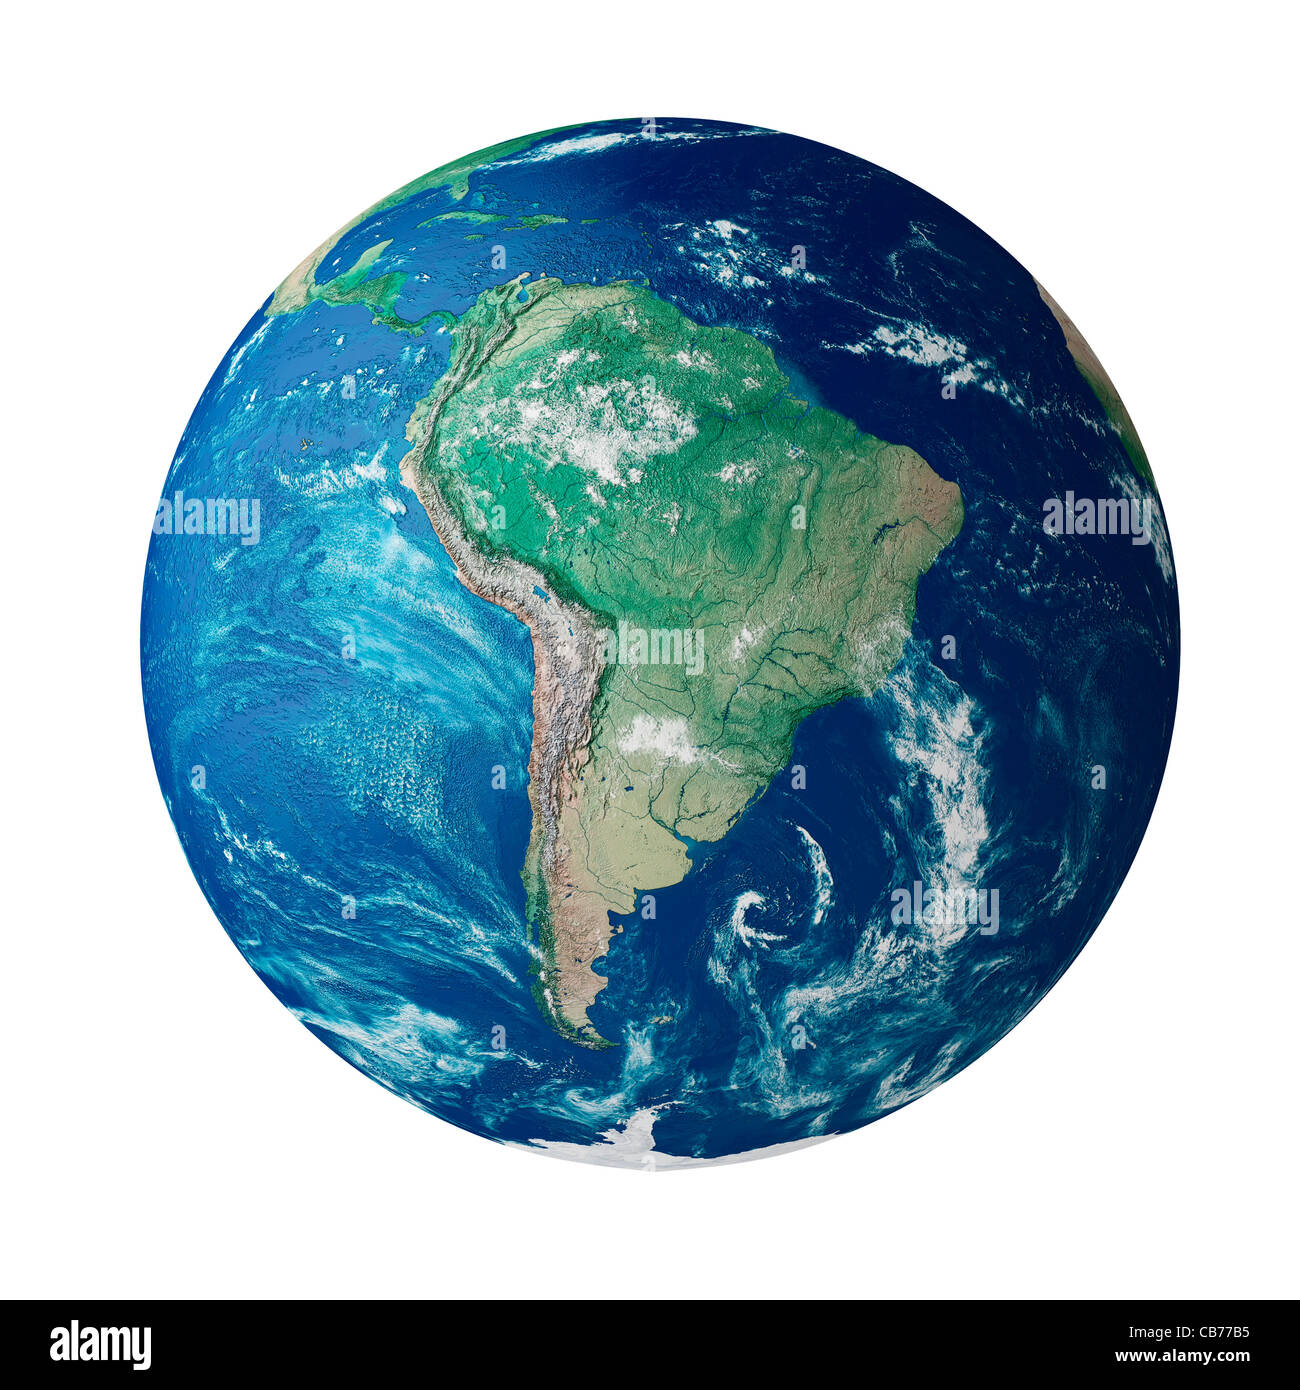 Globe showing the continent of South America on planet earth - Stock Image